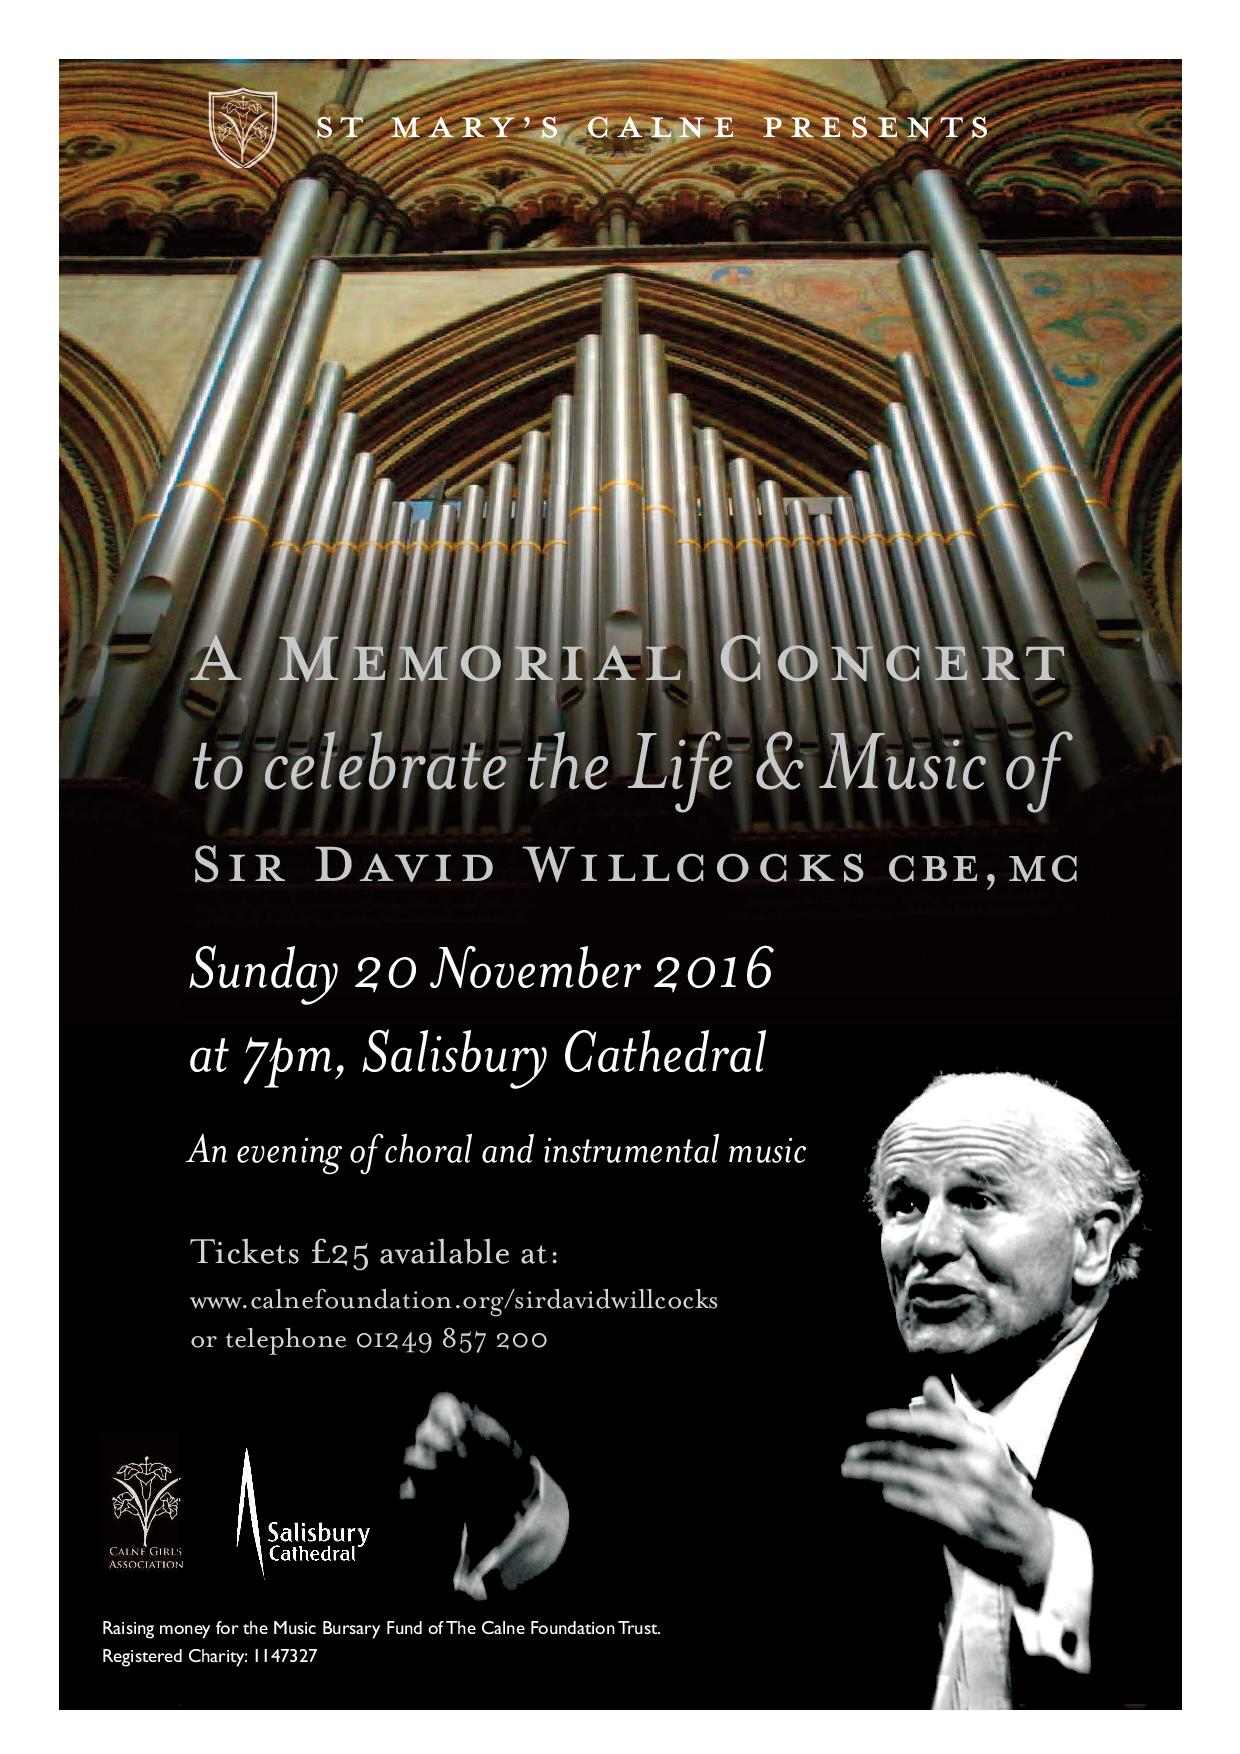 A memorial concert to celebrate the life and music of Sir David Willcocks CBE MC